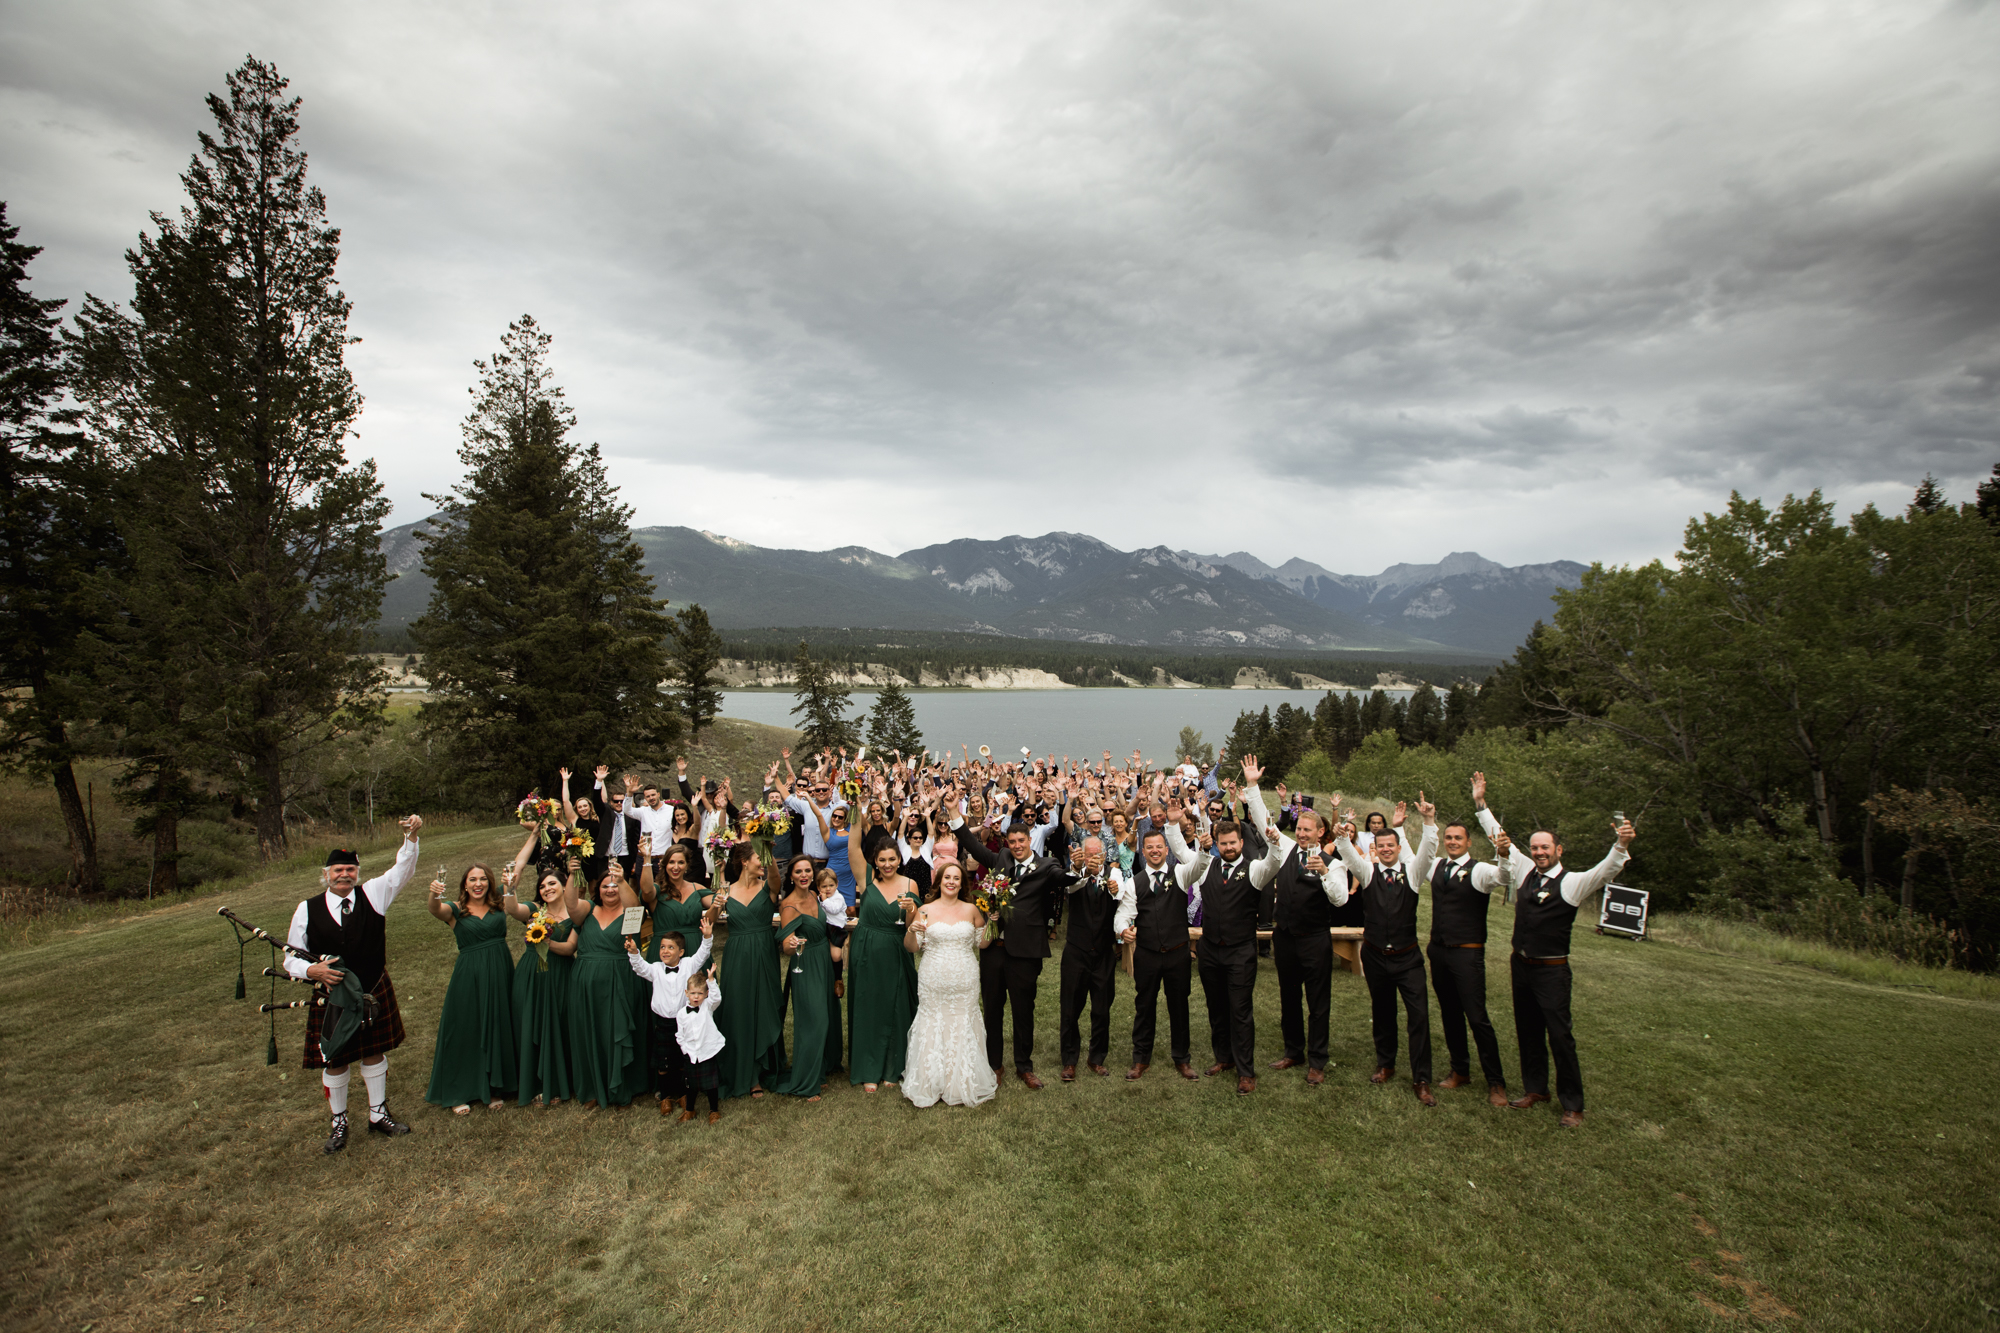 264-Willow_and_Wolf_Wedding_Photography_Heather_and_Devon_Invermere_Wedding_Ceremony_-ATP_6771